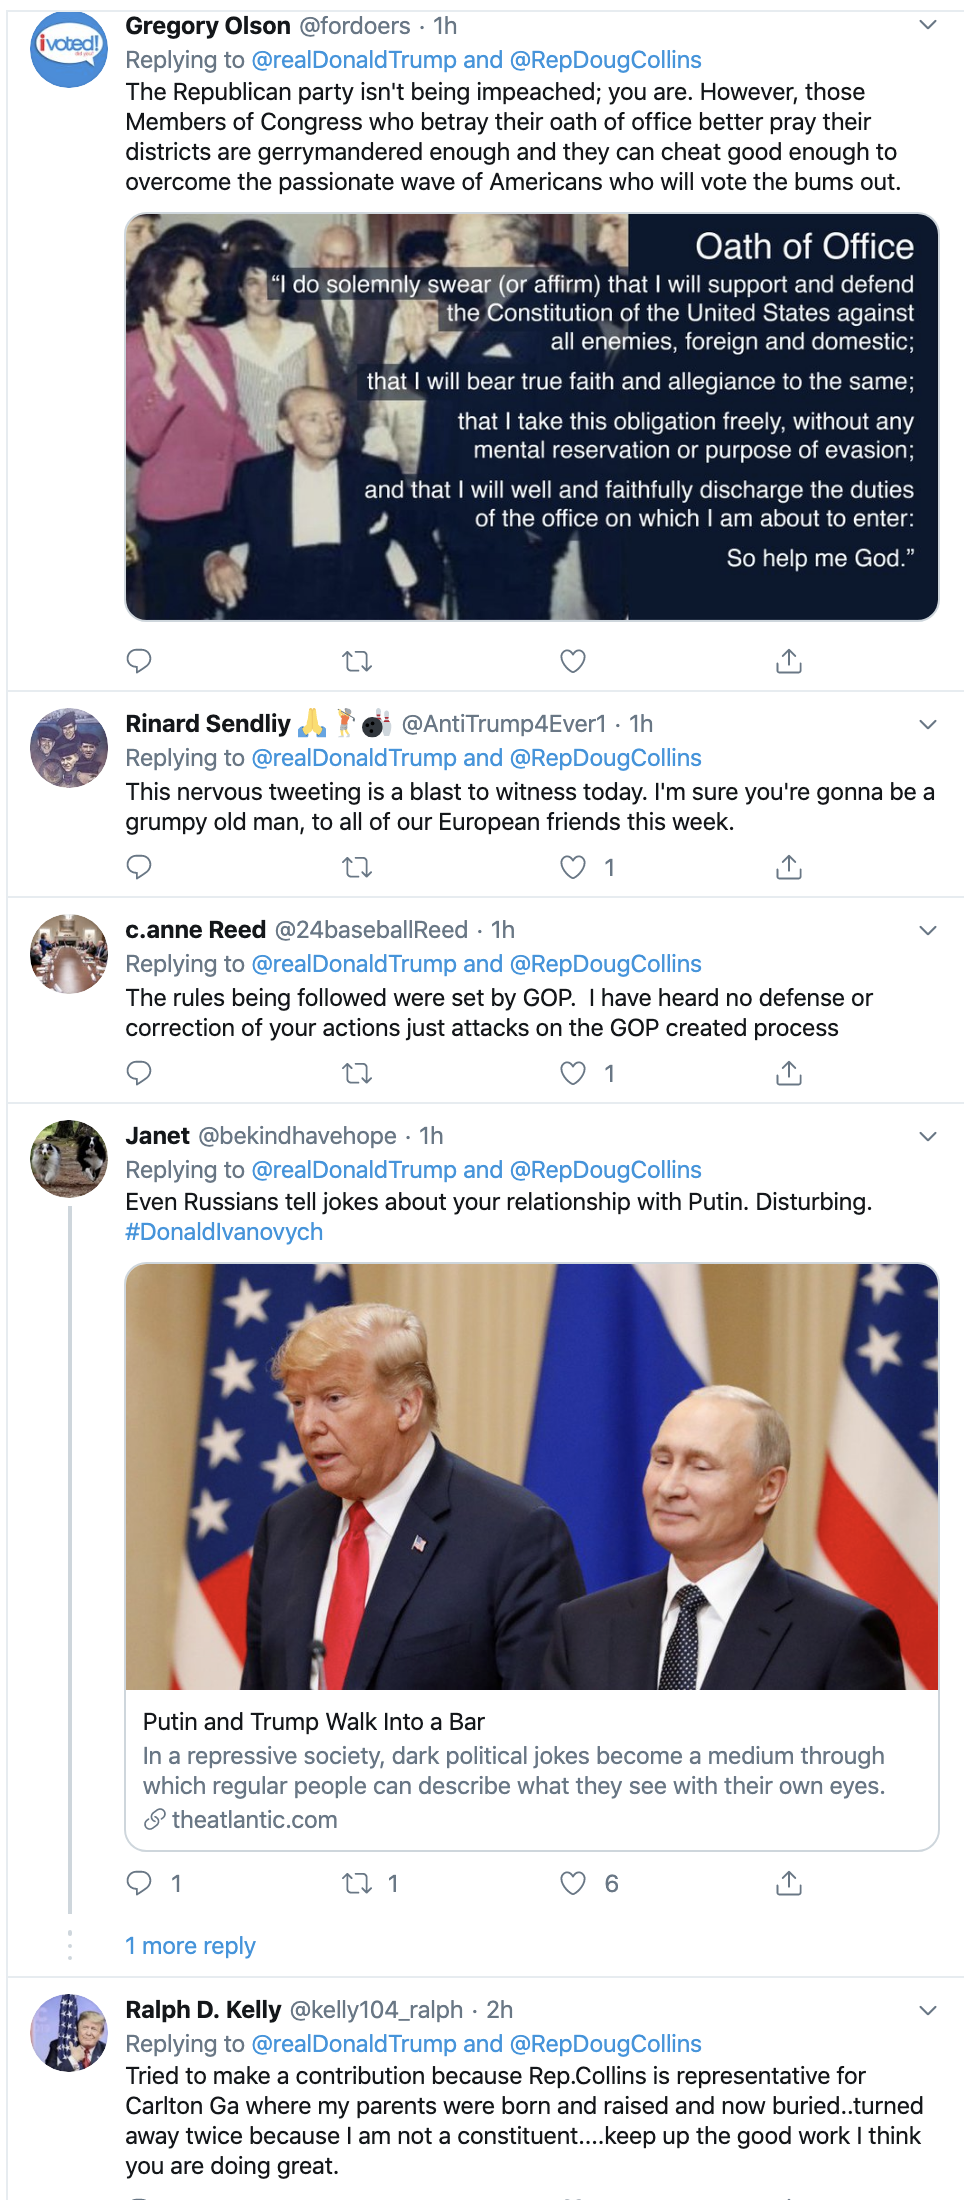 Screen-Shot-2019-12-02-at-2.33.55-PM Trump Unleashes 14-Tweet Freakout Like A Guy With Poor Work Ethic Corruption Featured Foreign Policy Impeachment Top Stories